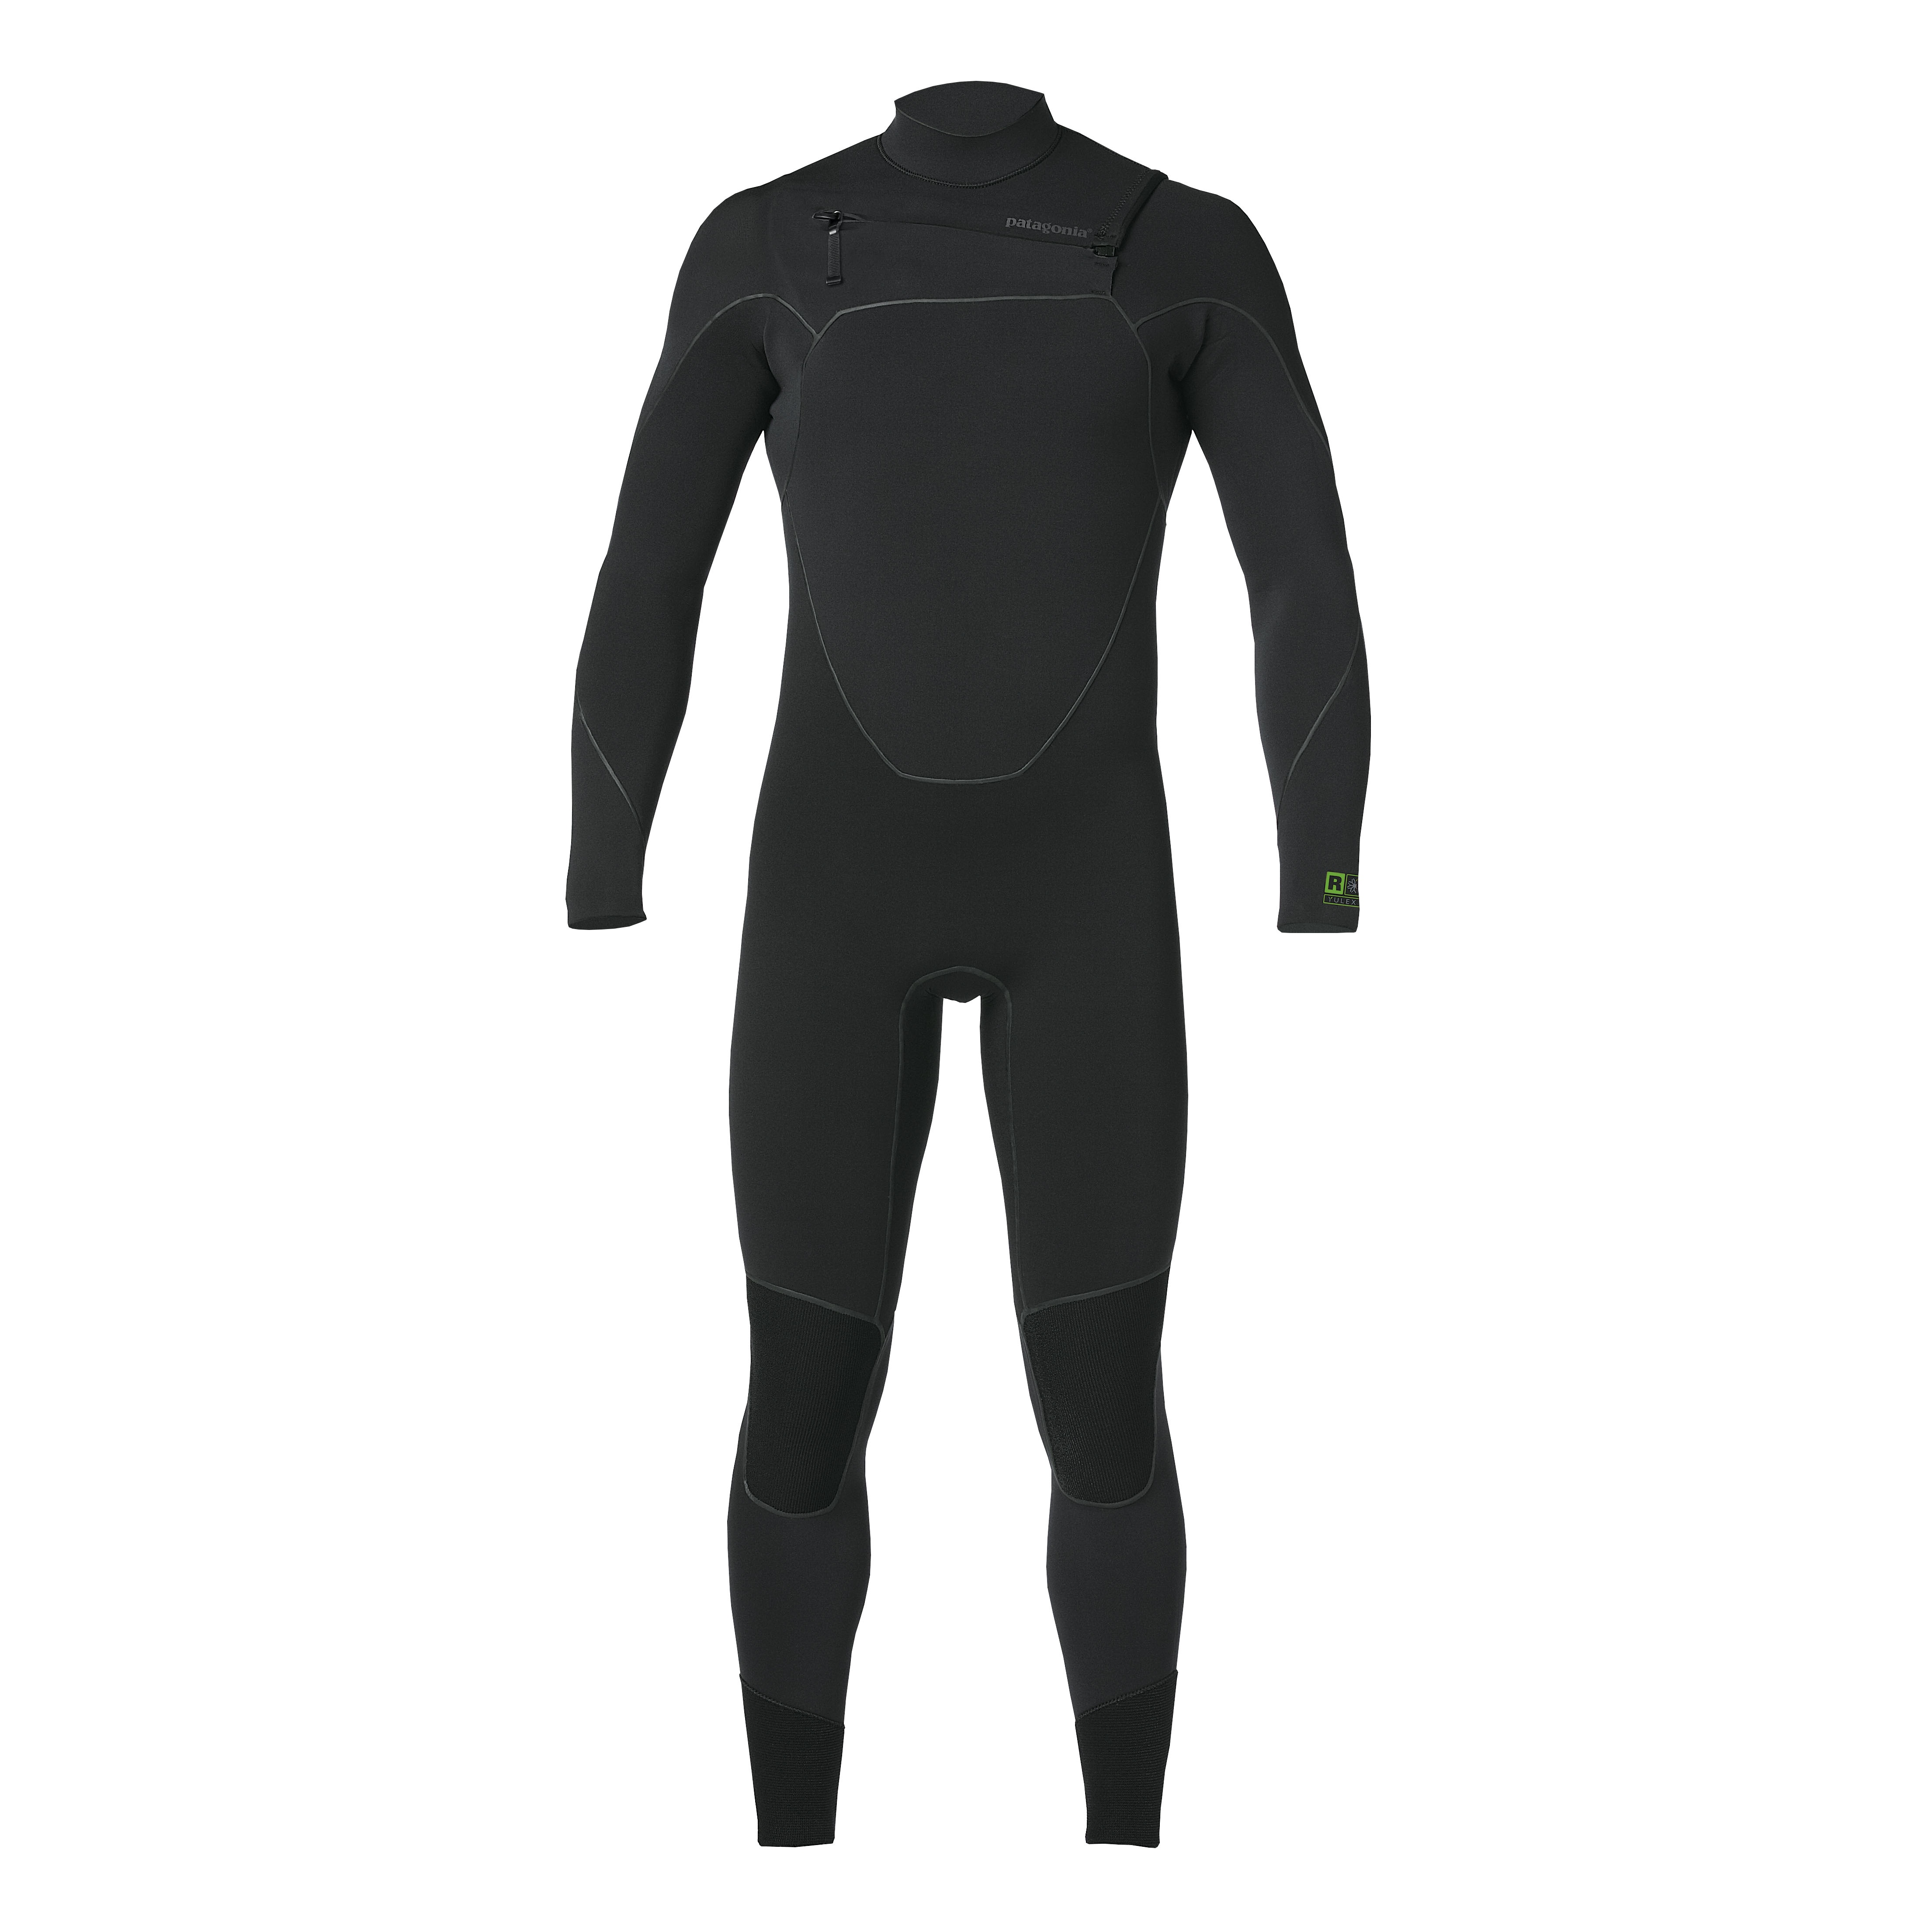 Say Goodbye to Neoprene  Patagonia Introduces World s First Wetsuits Made  with FSC® Certified Natural Rubber 3d807e203